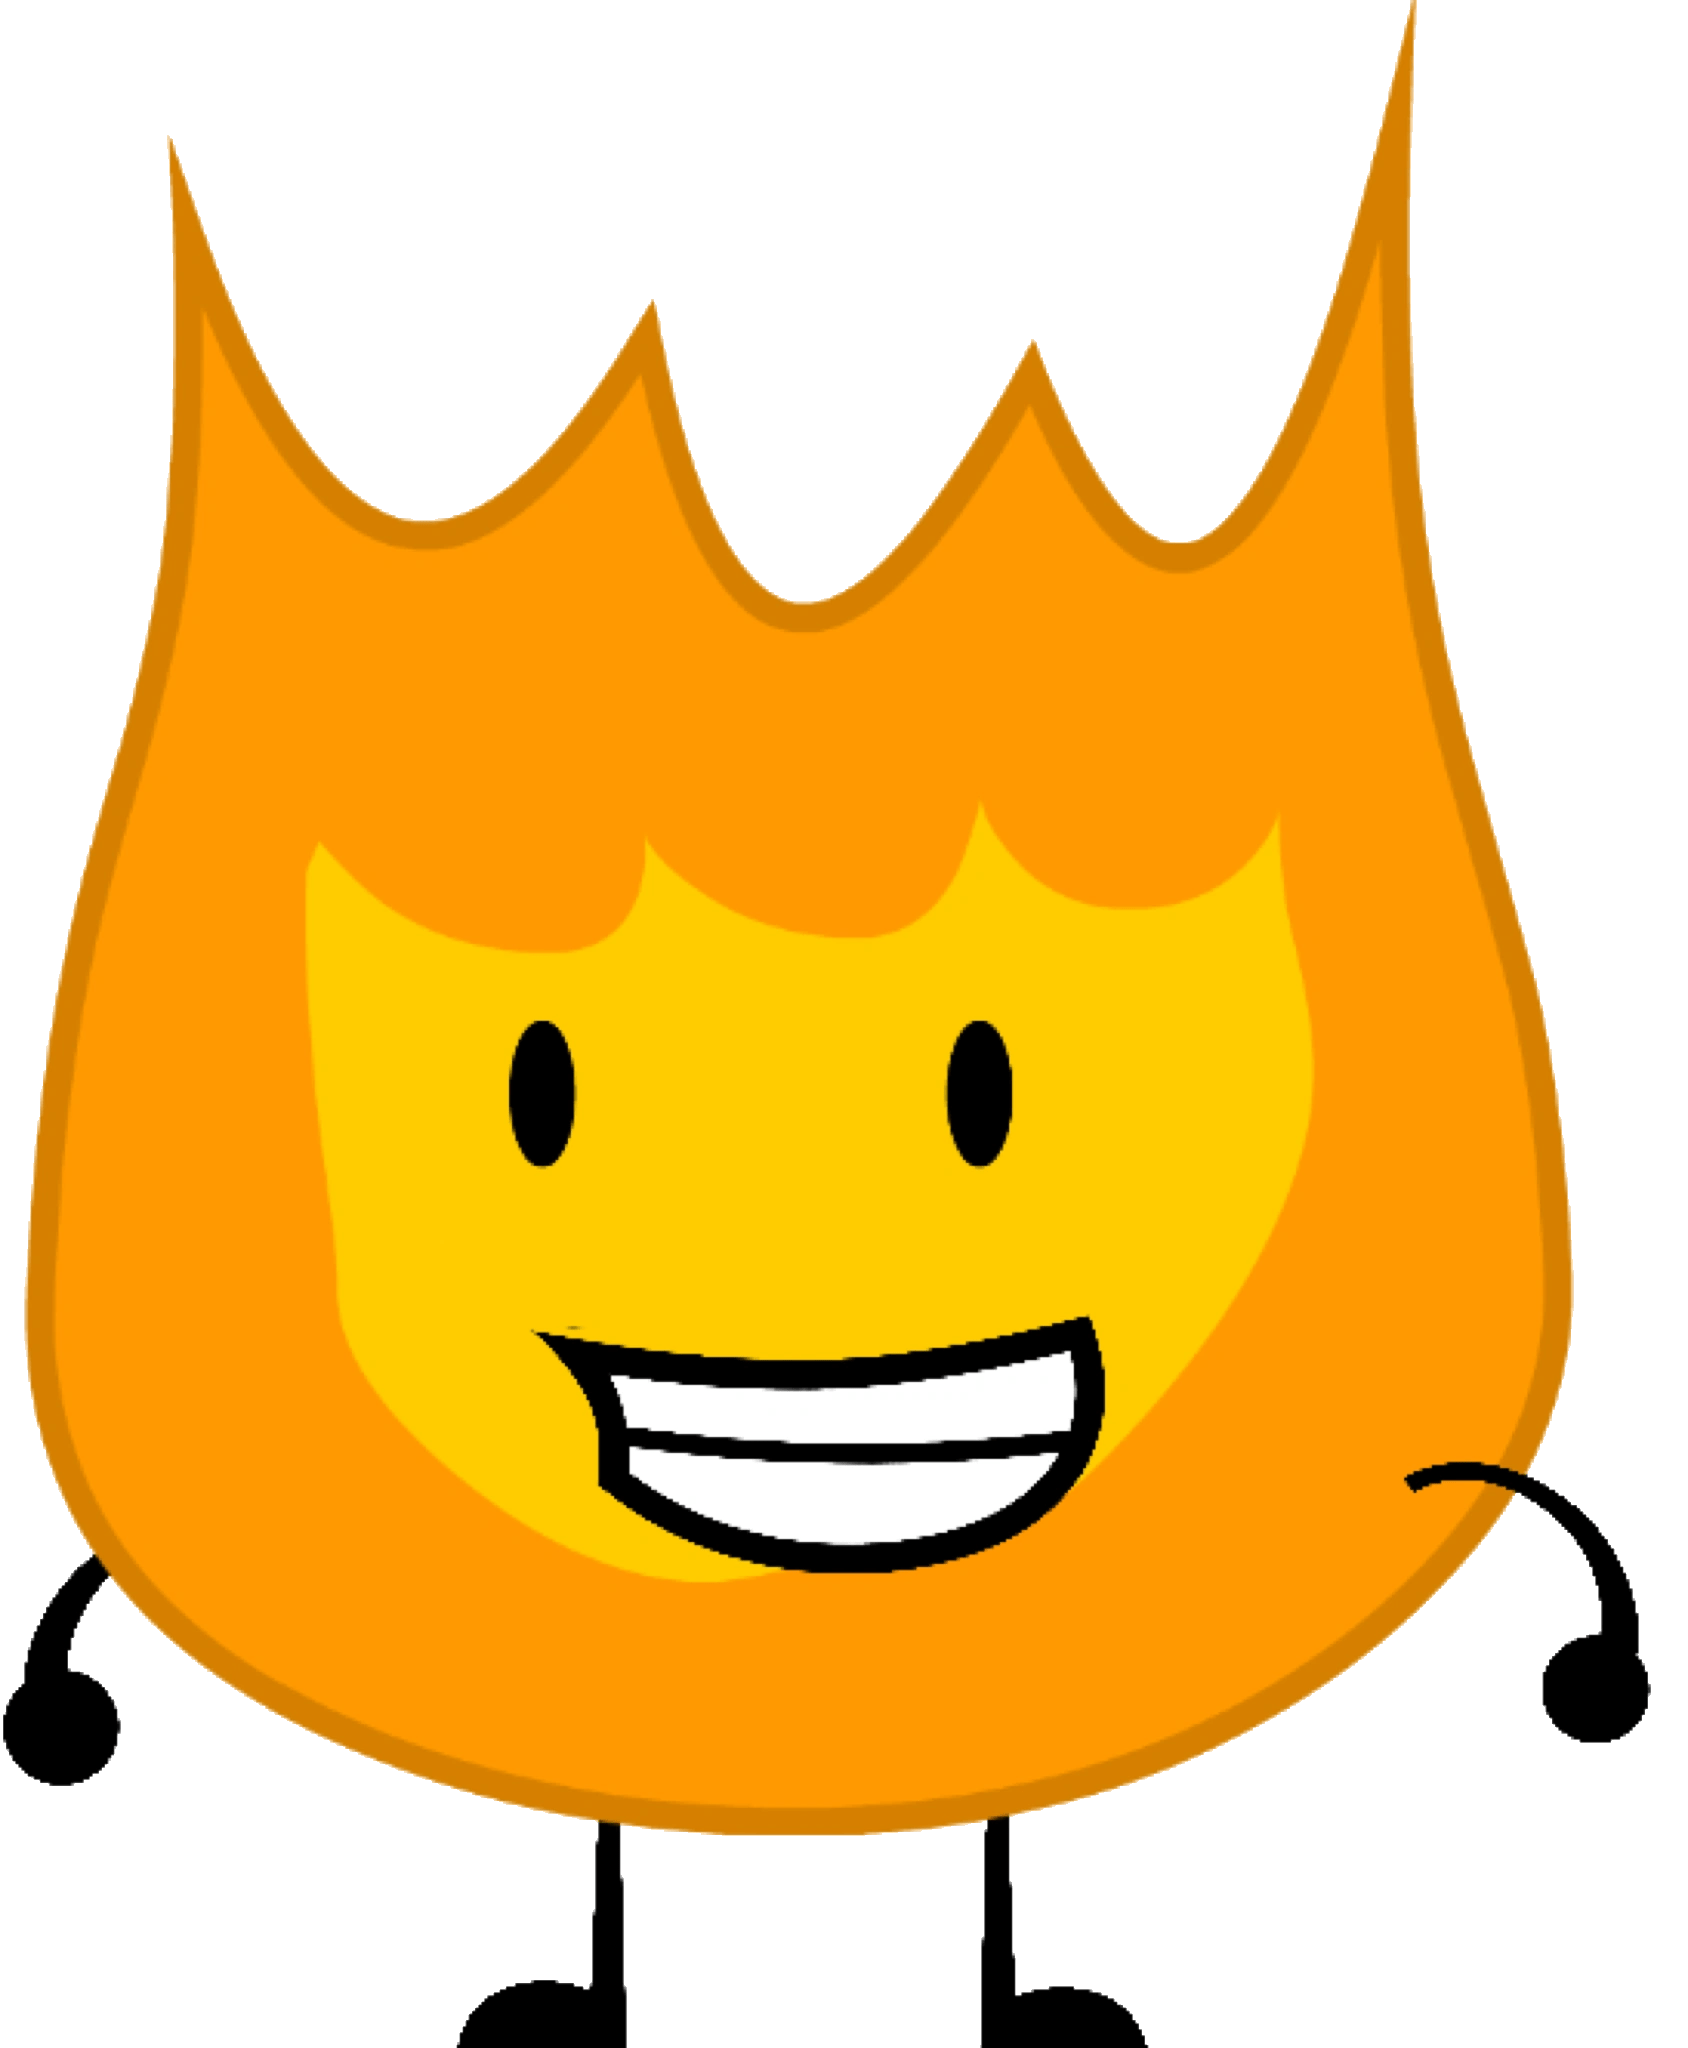 Old Bfdi Firey - Year of Clean Water